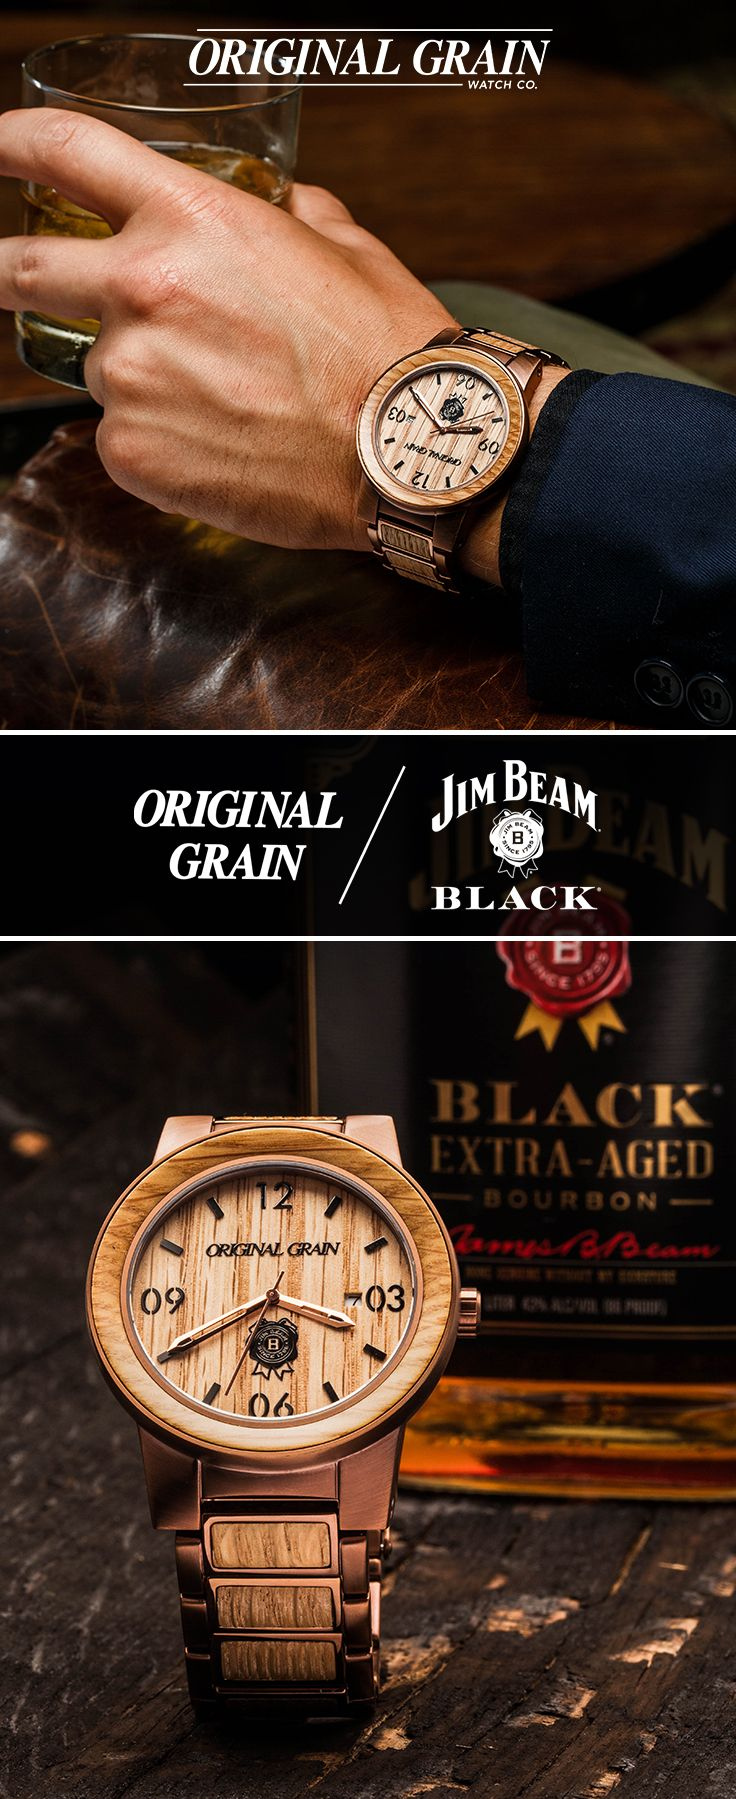 junghansmaxbill whisky watch s my whiskey closer new at strap ryok pin on look bauhaus favorite watches